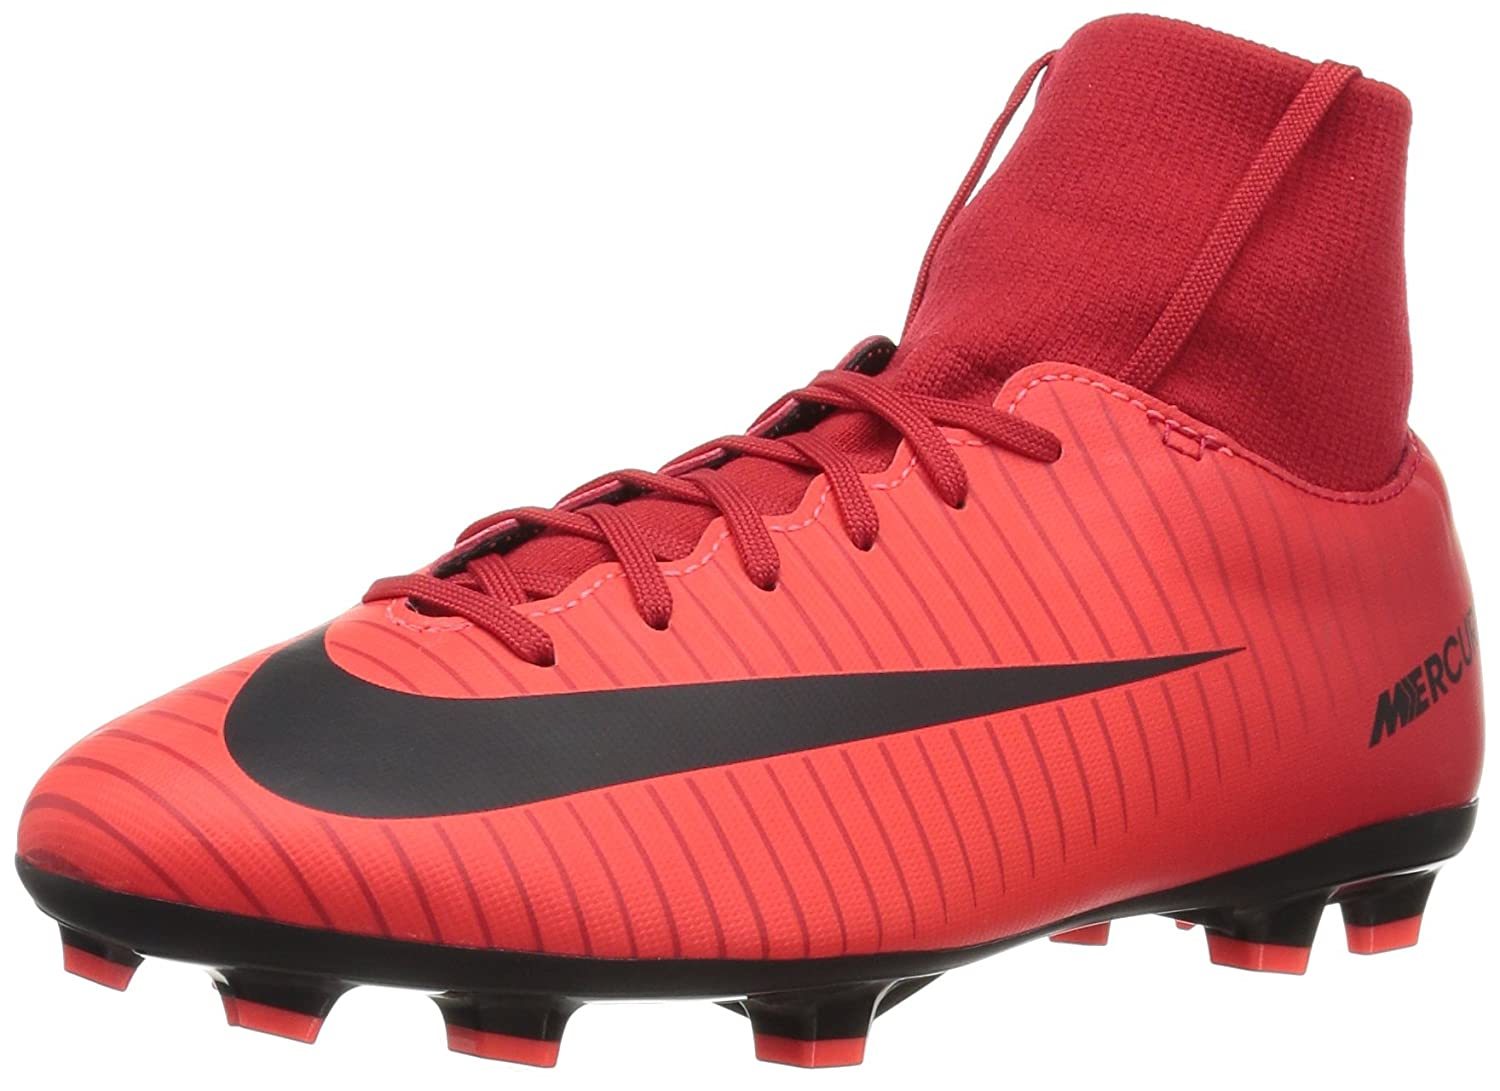 e466d729e Amazon.com  NIKE Jr. Victory VI Dynamic Fit FG Soccer Cleat (Sz. 4Y) Red